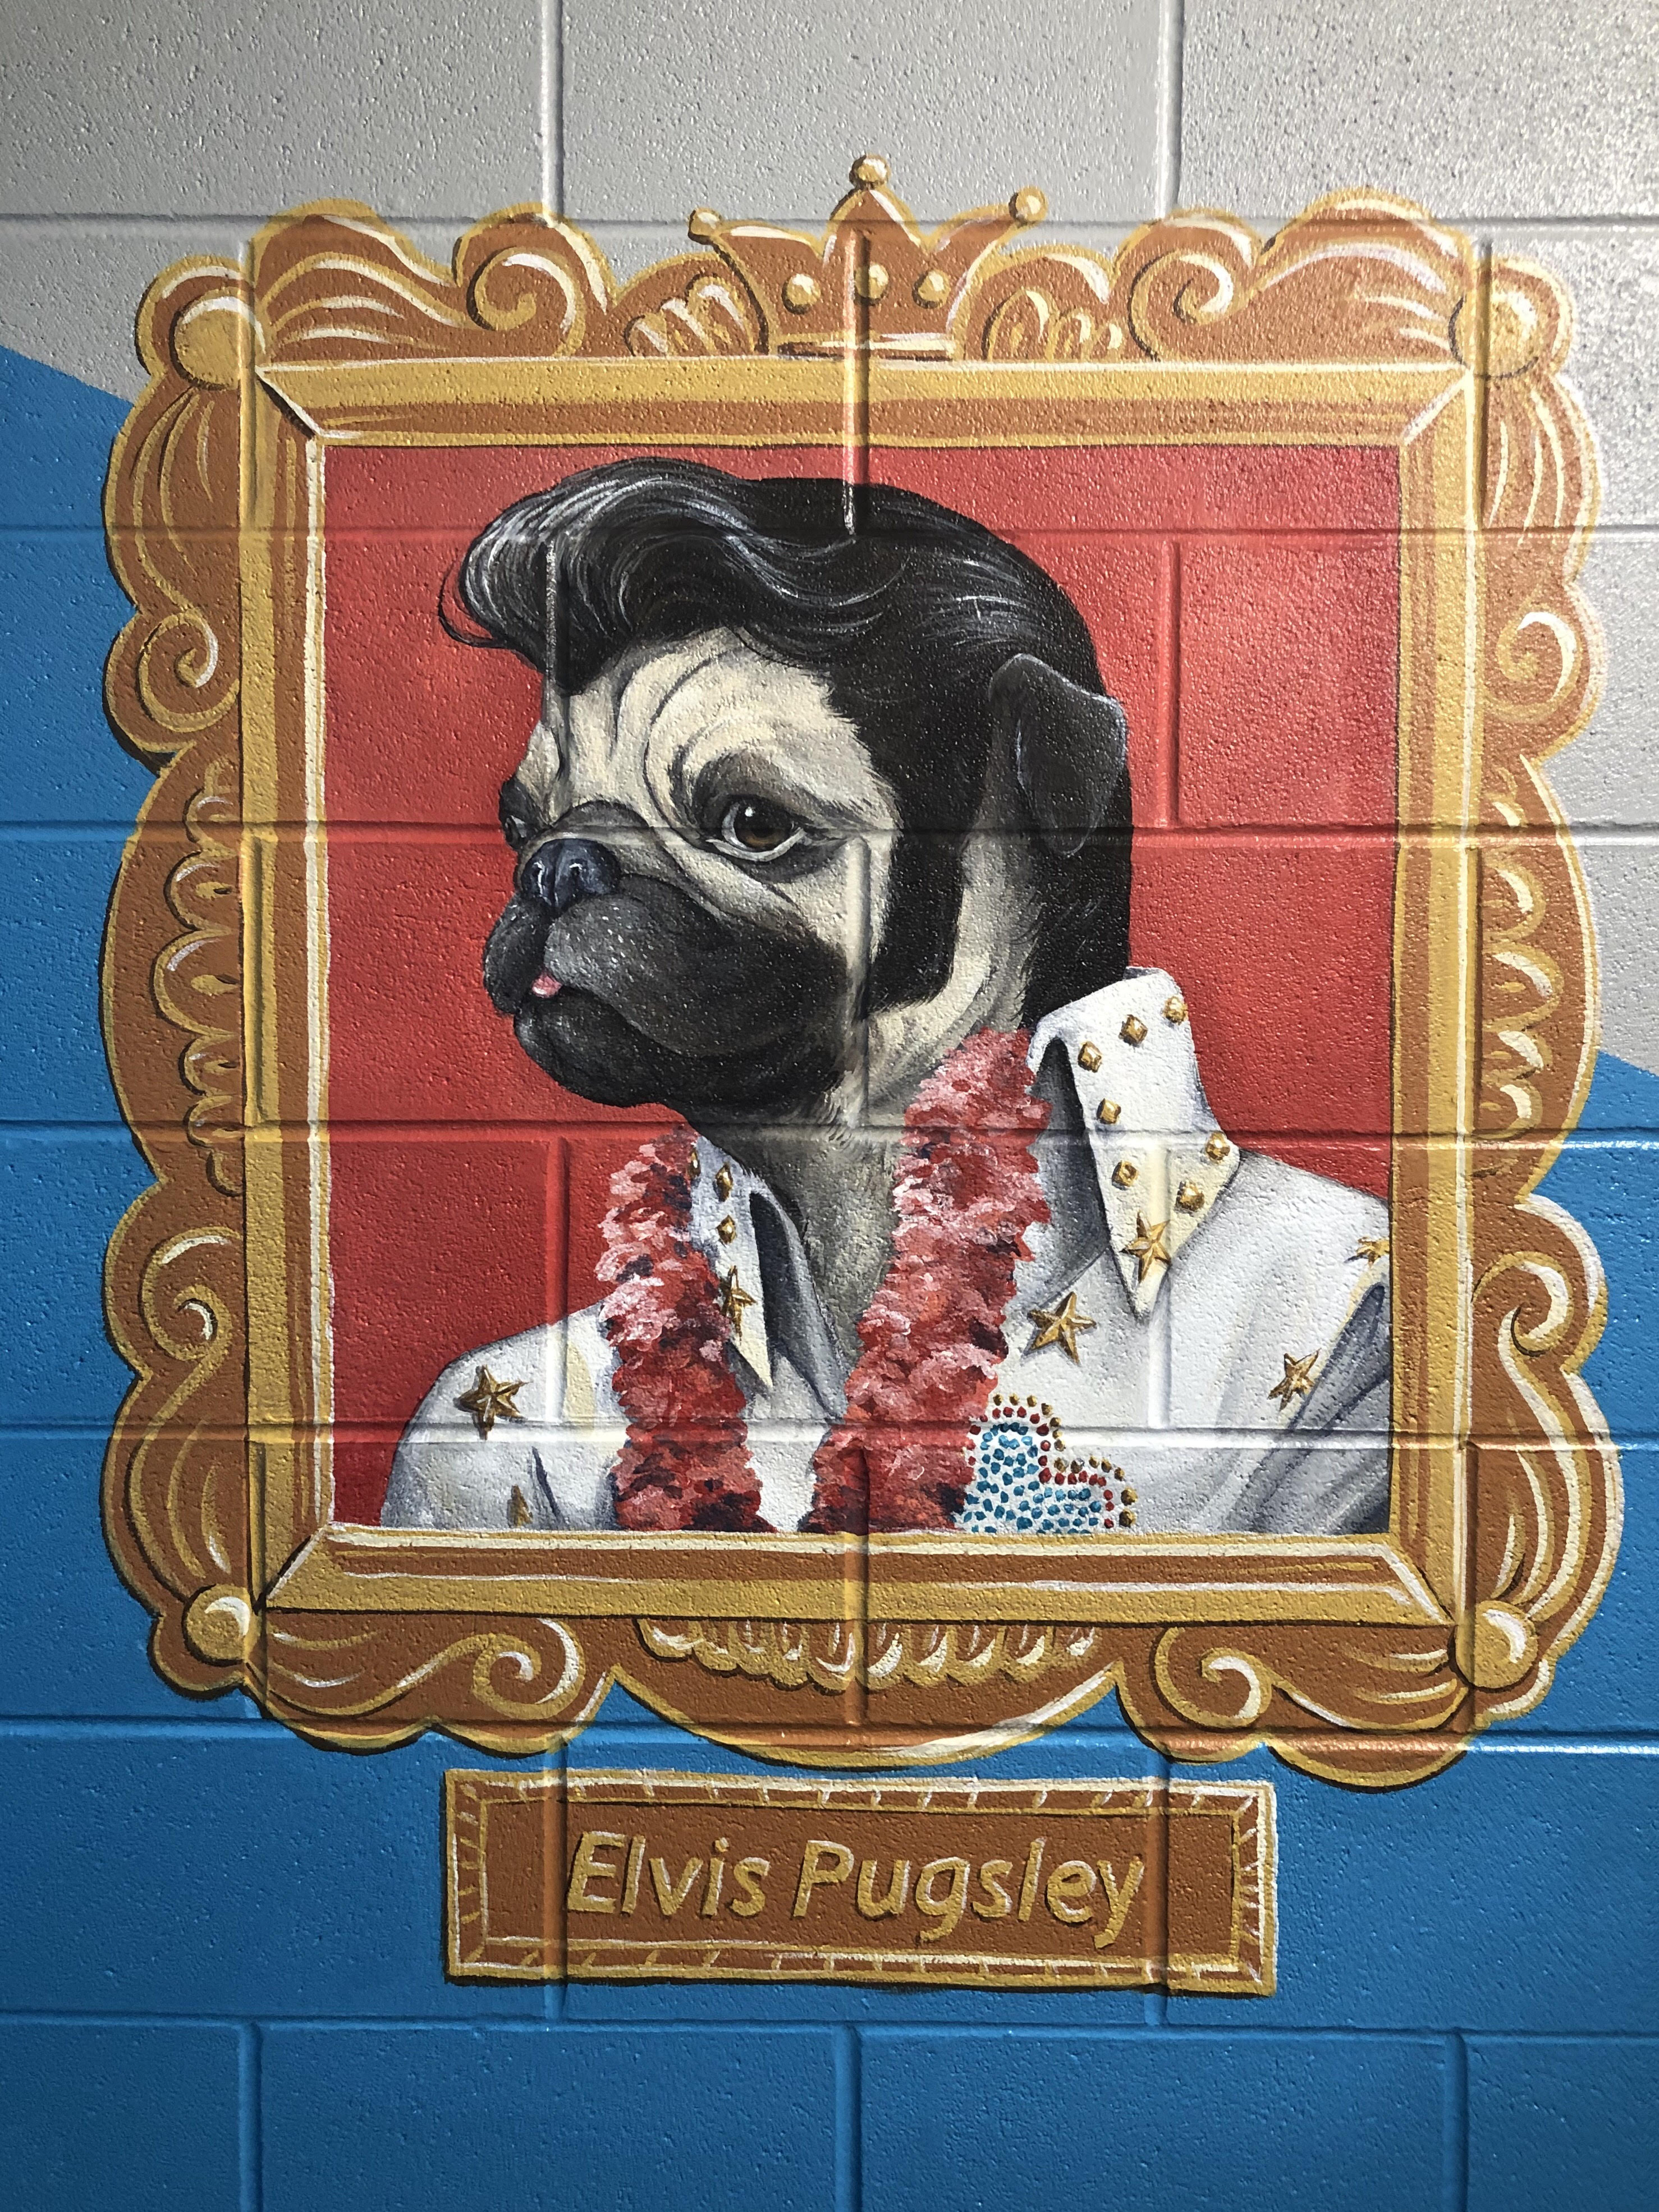 ElvisPugsley